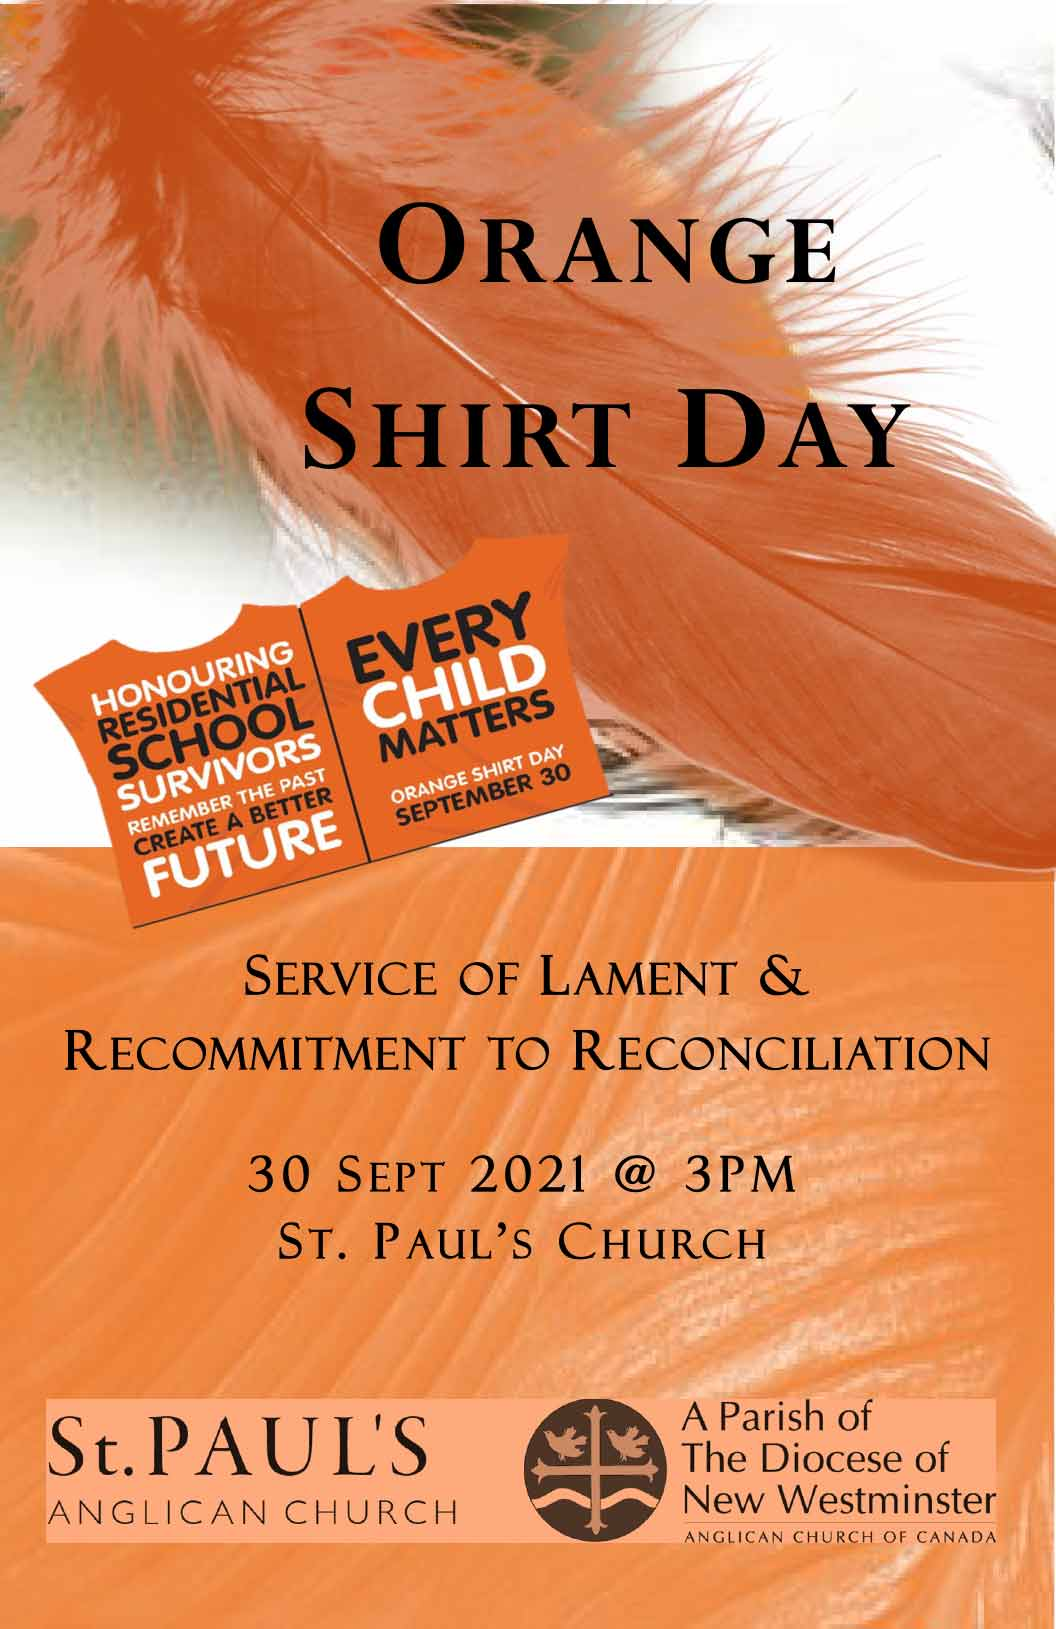 Orange Shirt Day Honouring Residential School Survivors Every Child Matters Orange Shirt Day September 30 Service of Lament and Recommitment to Reconciliation Thursday, Sept 30 @3pm St. Paul's Church